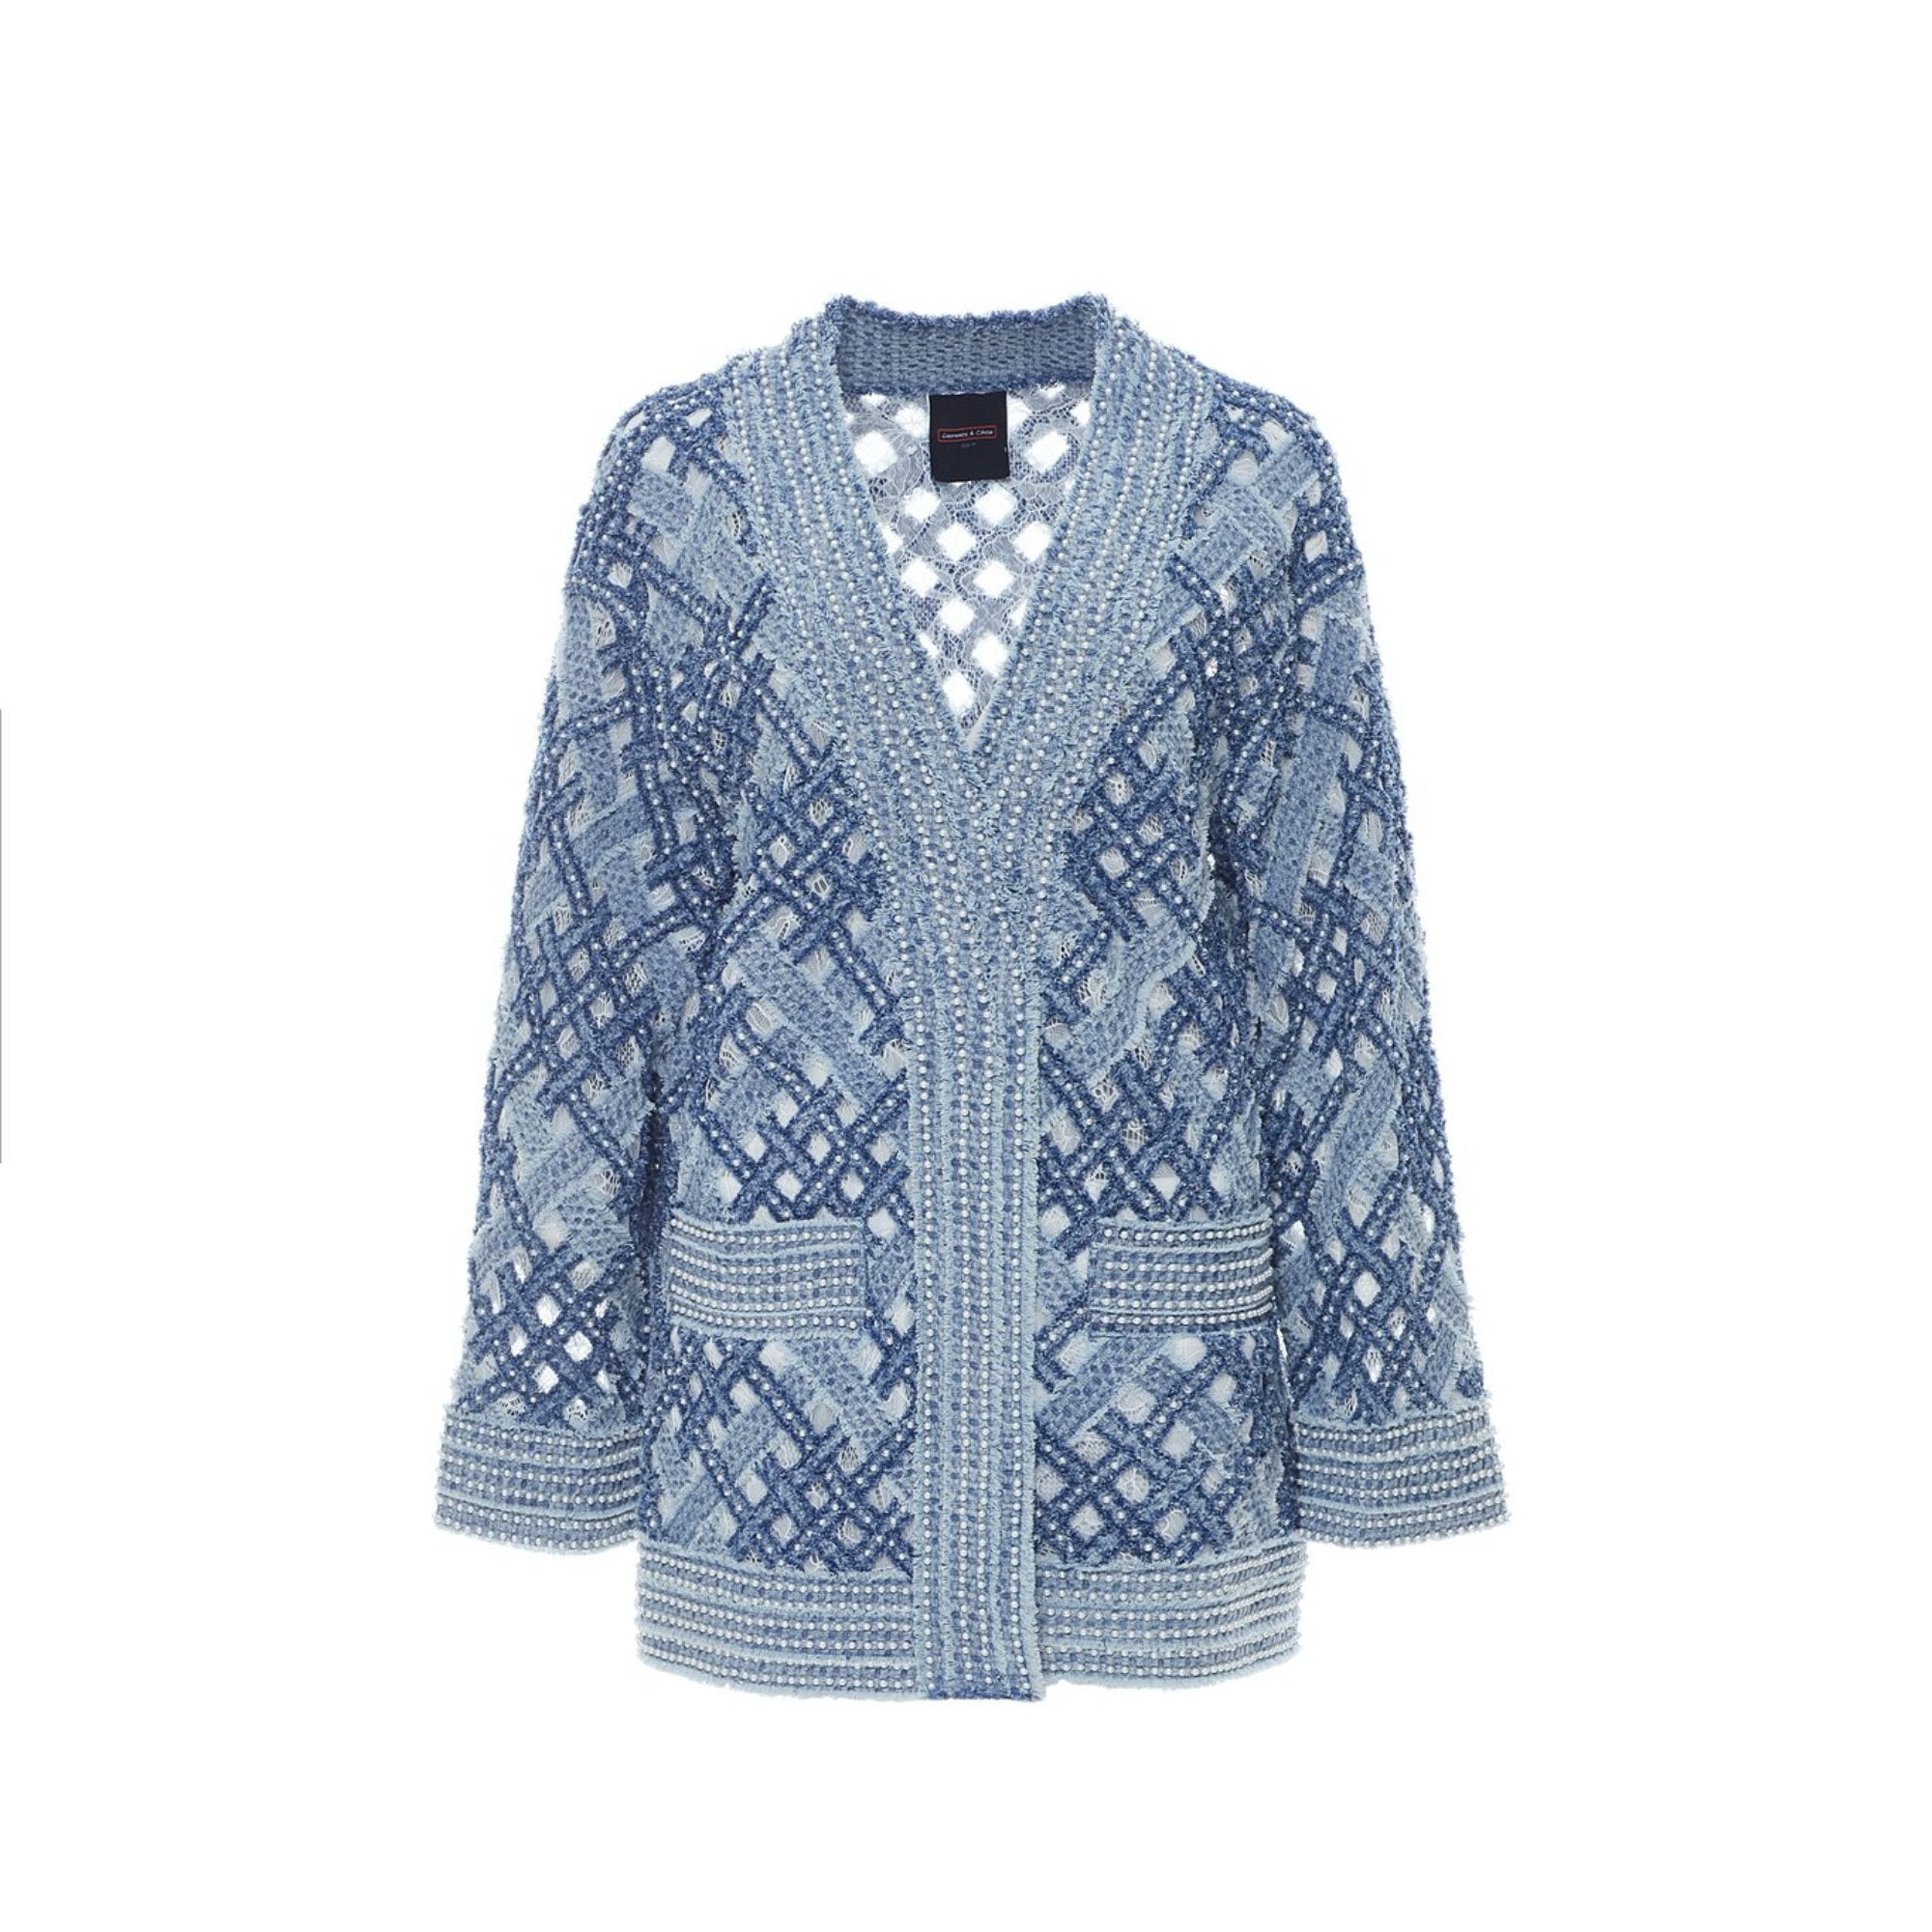 Laurence & Chico Handwoven Denim on Lace Cardigan | MADA IN CHINA